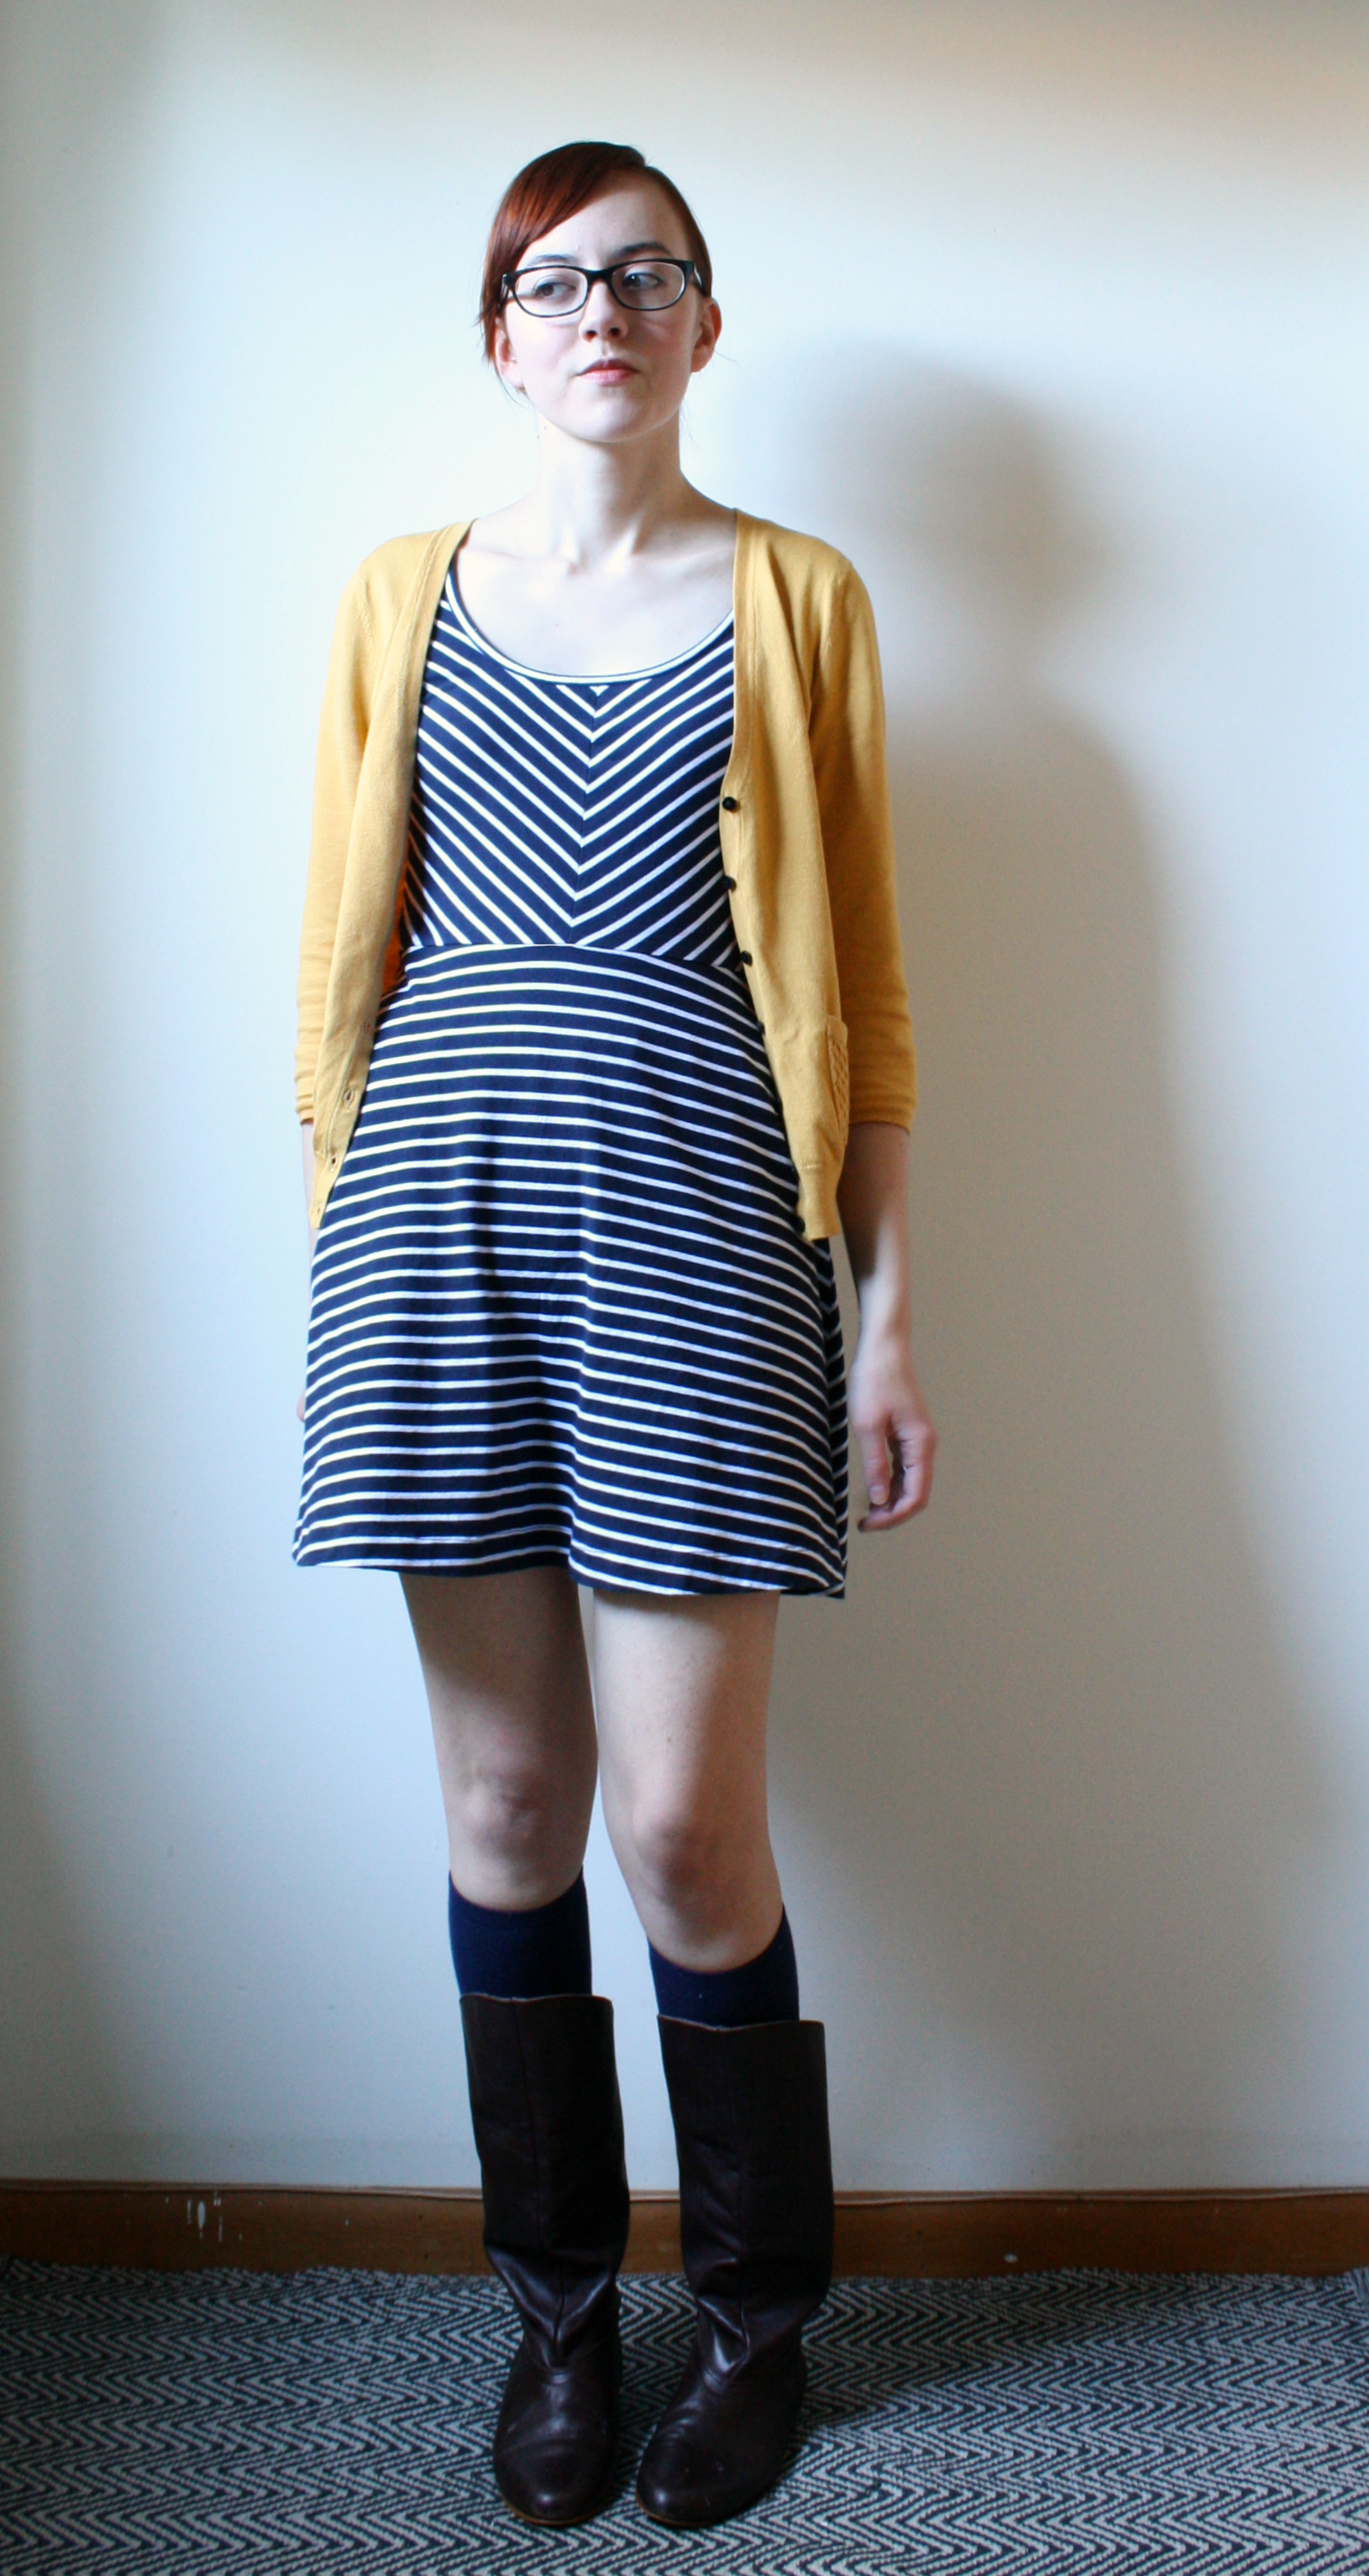 mustard cardigan outfit